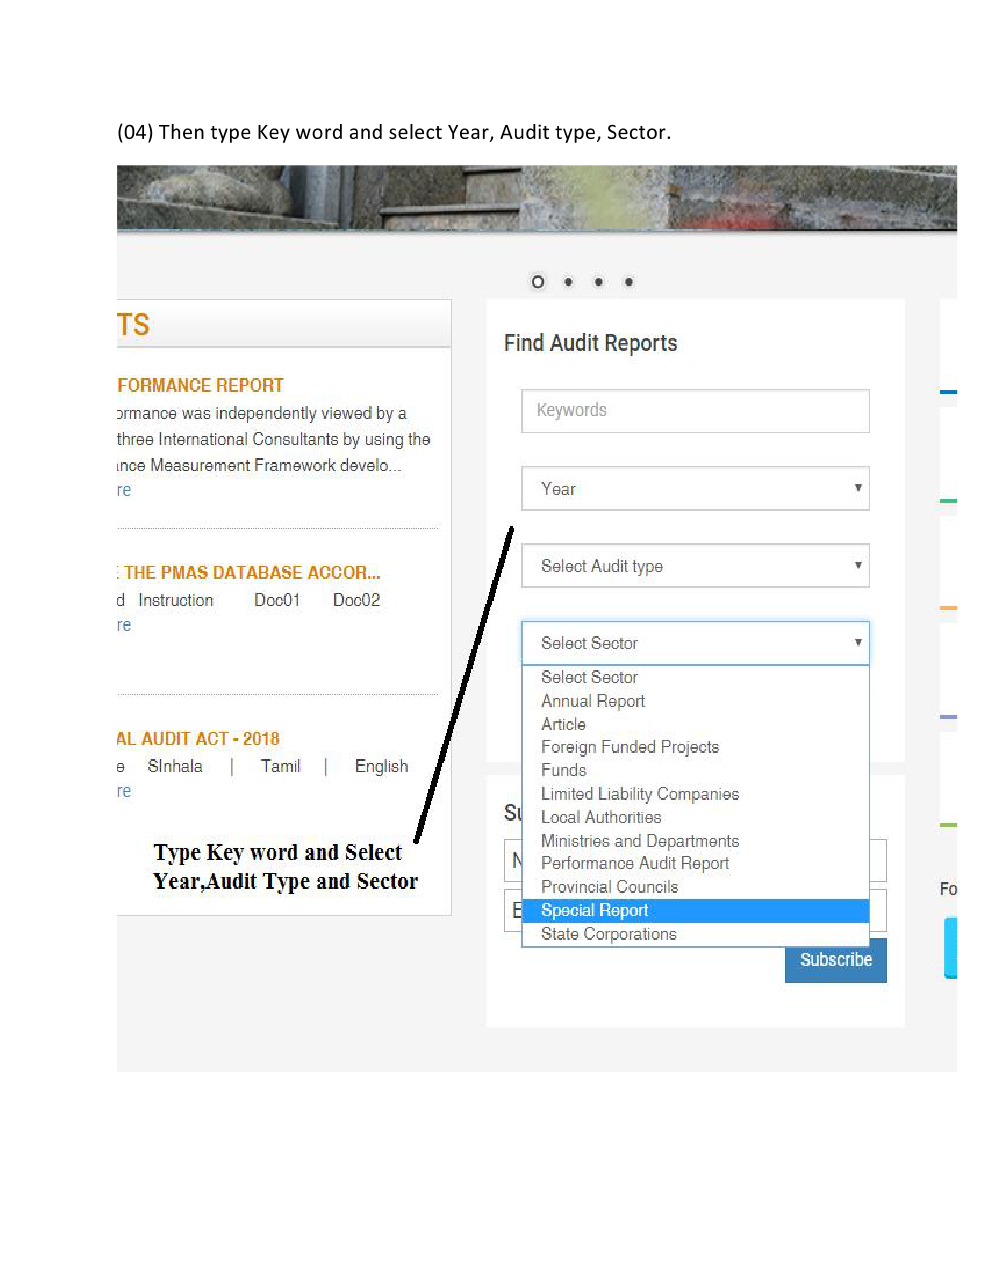 How to find Audit Report 2